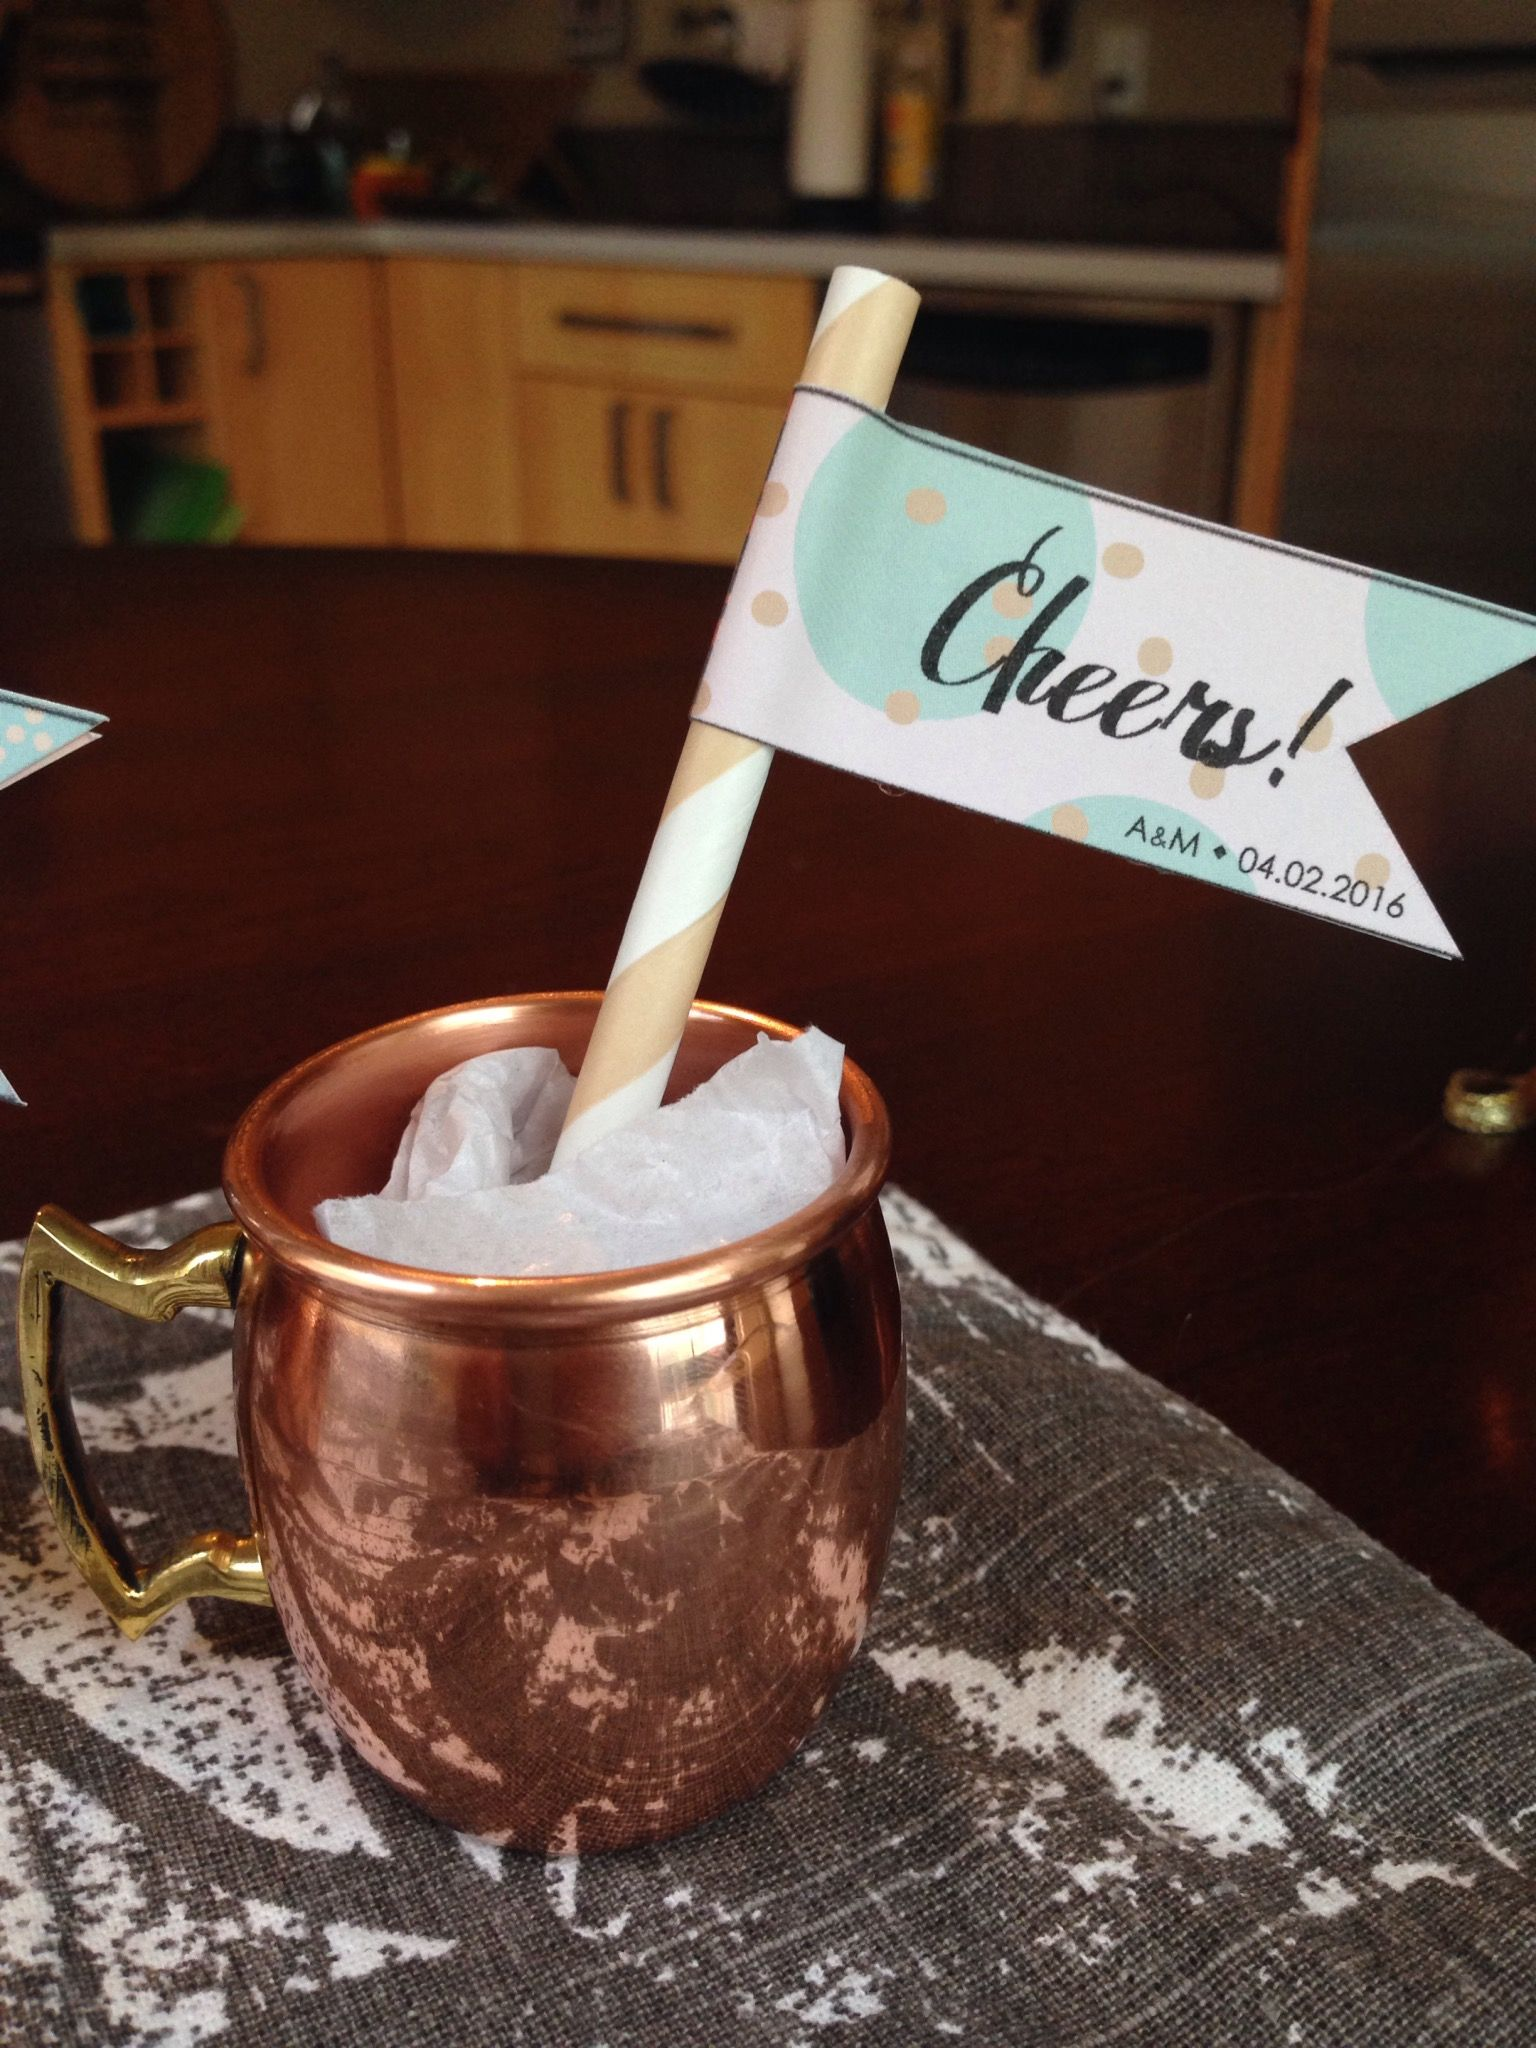 Our wedding favors Moscow Mule copper mug shot glass